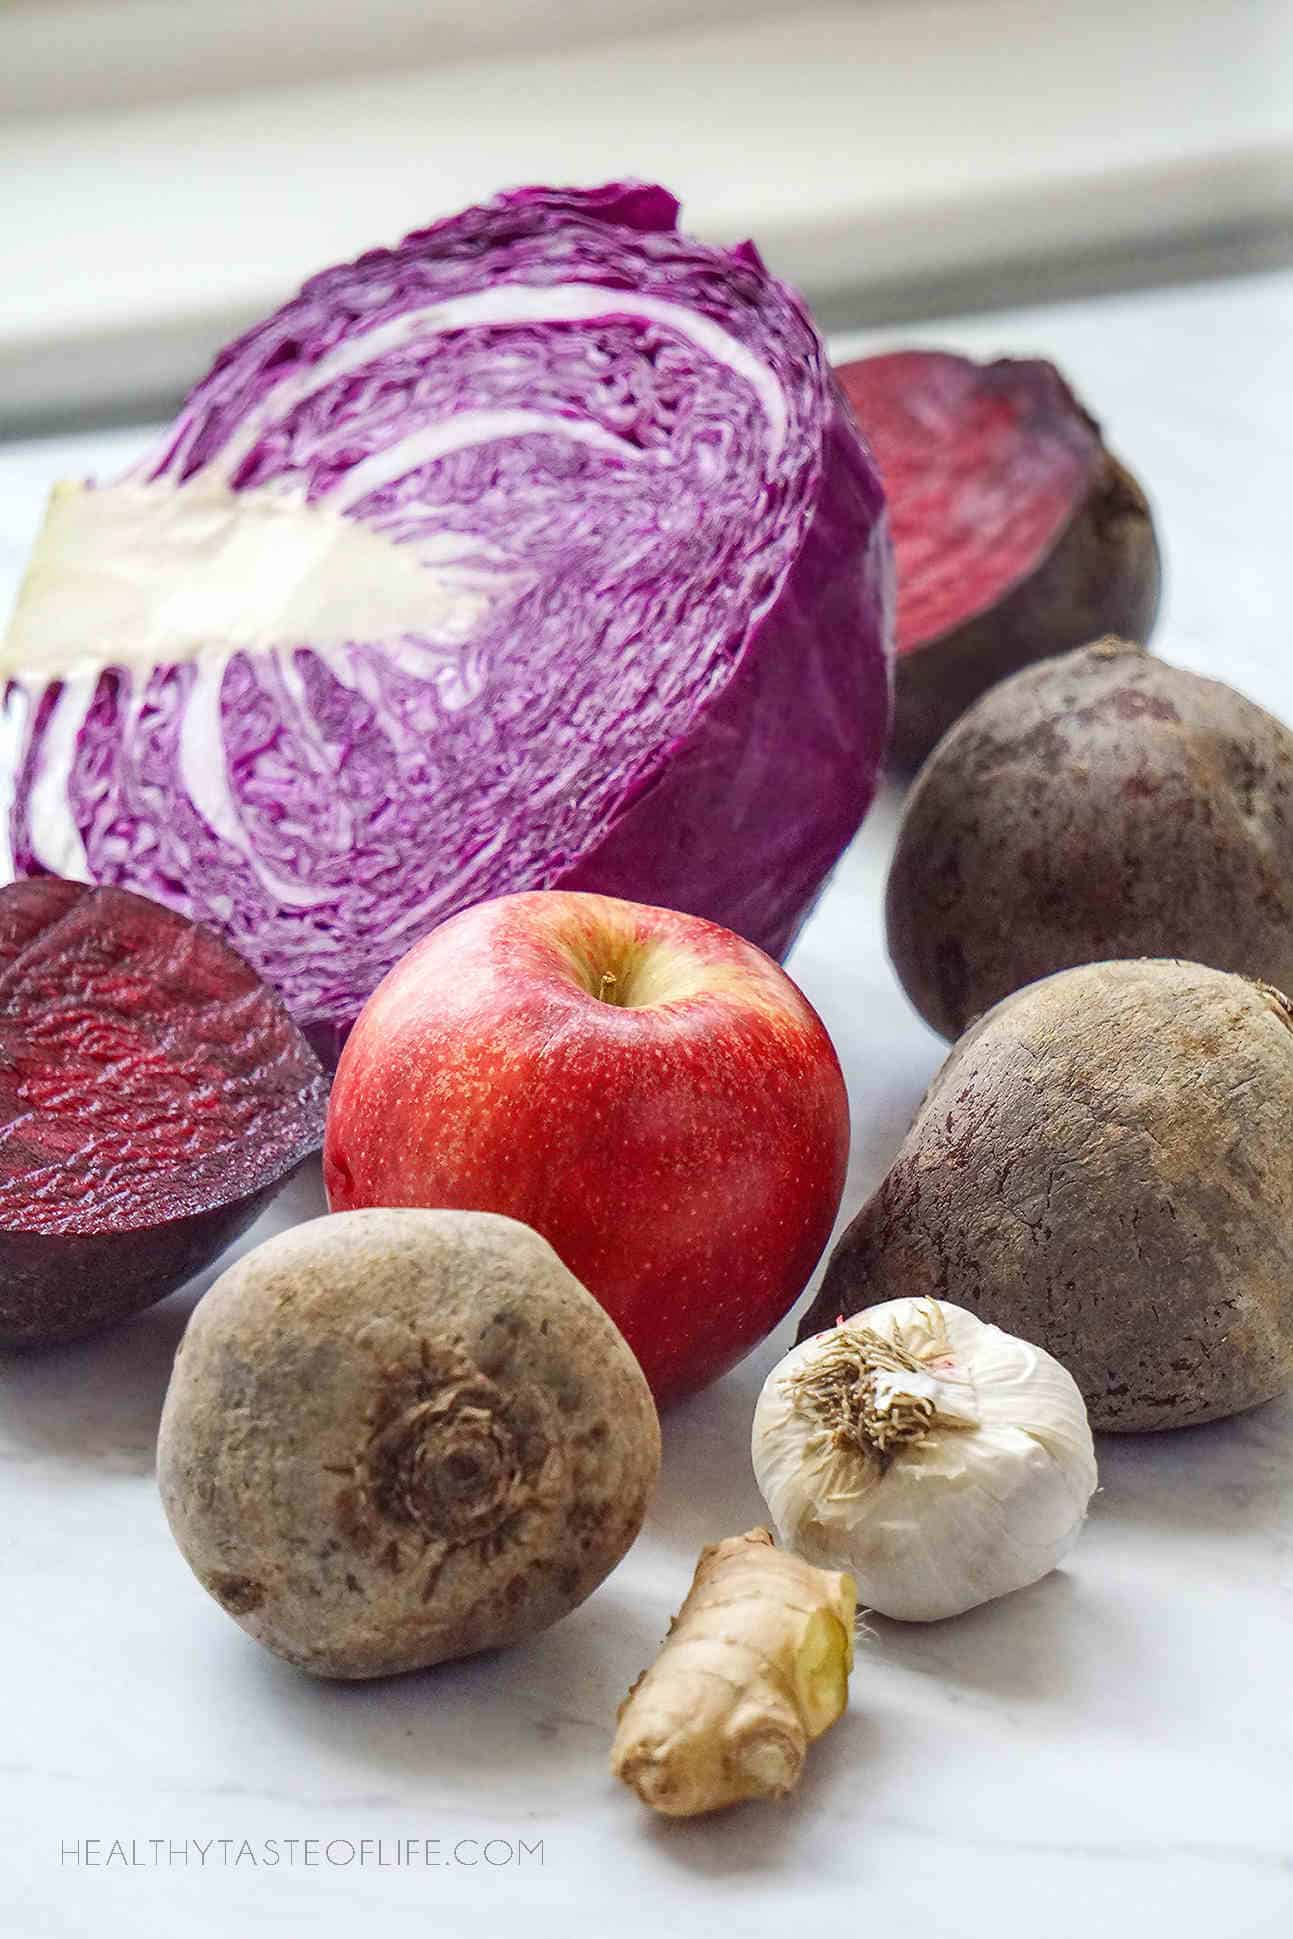 Lacto fermented beets cabbage ginger, apple garlic, recipe.